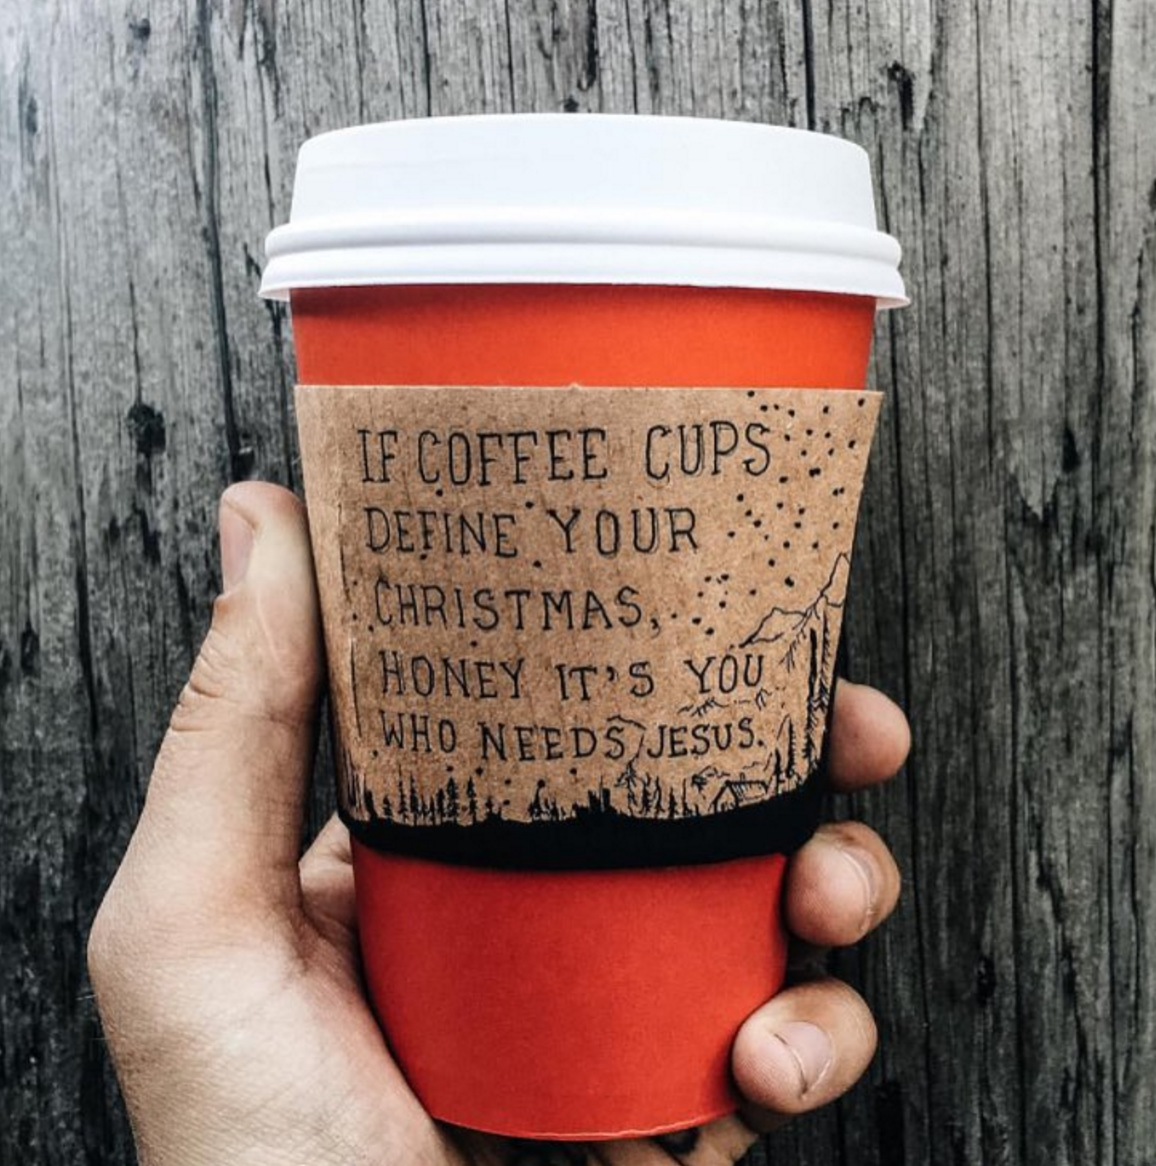 What is the Starbucks red cup?